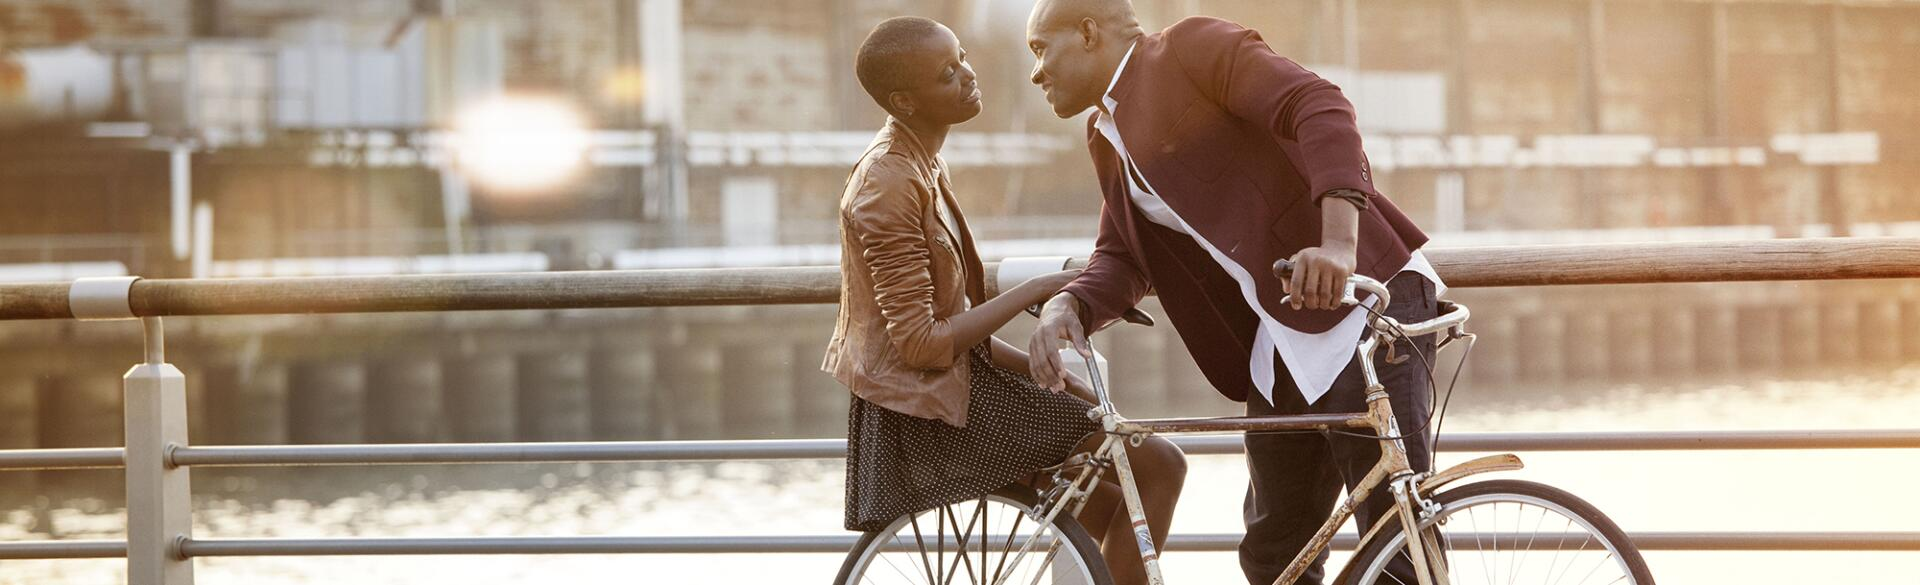 Date_with_Less_stress_Couple_on_bike_offset_82260_1540.jpg